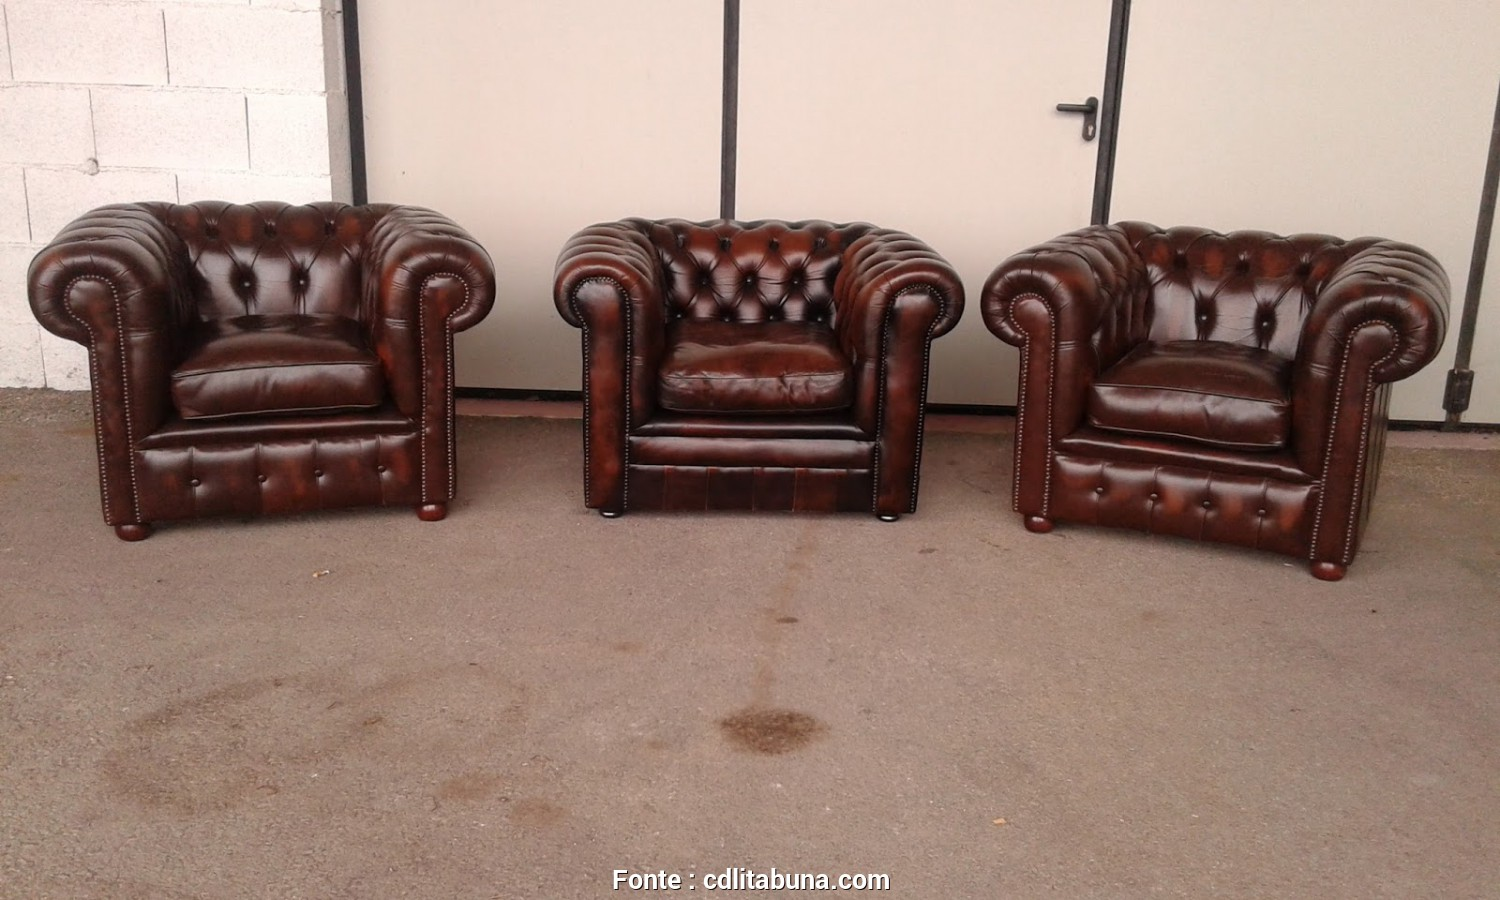 Divano Usato In Pelle, Incredibile Poltrone Chesterfield Vintage Originali In Pelle